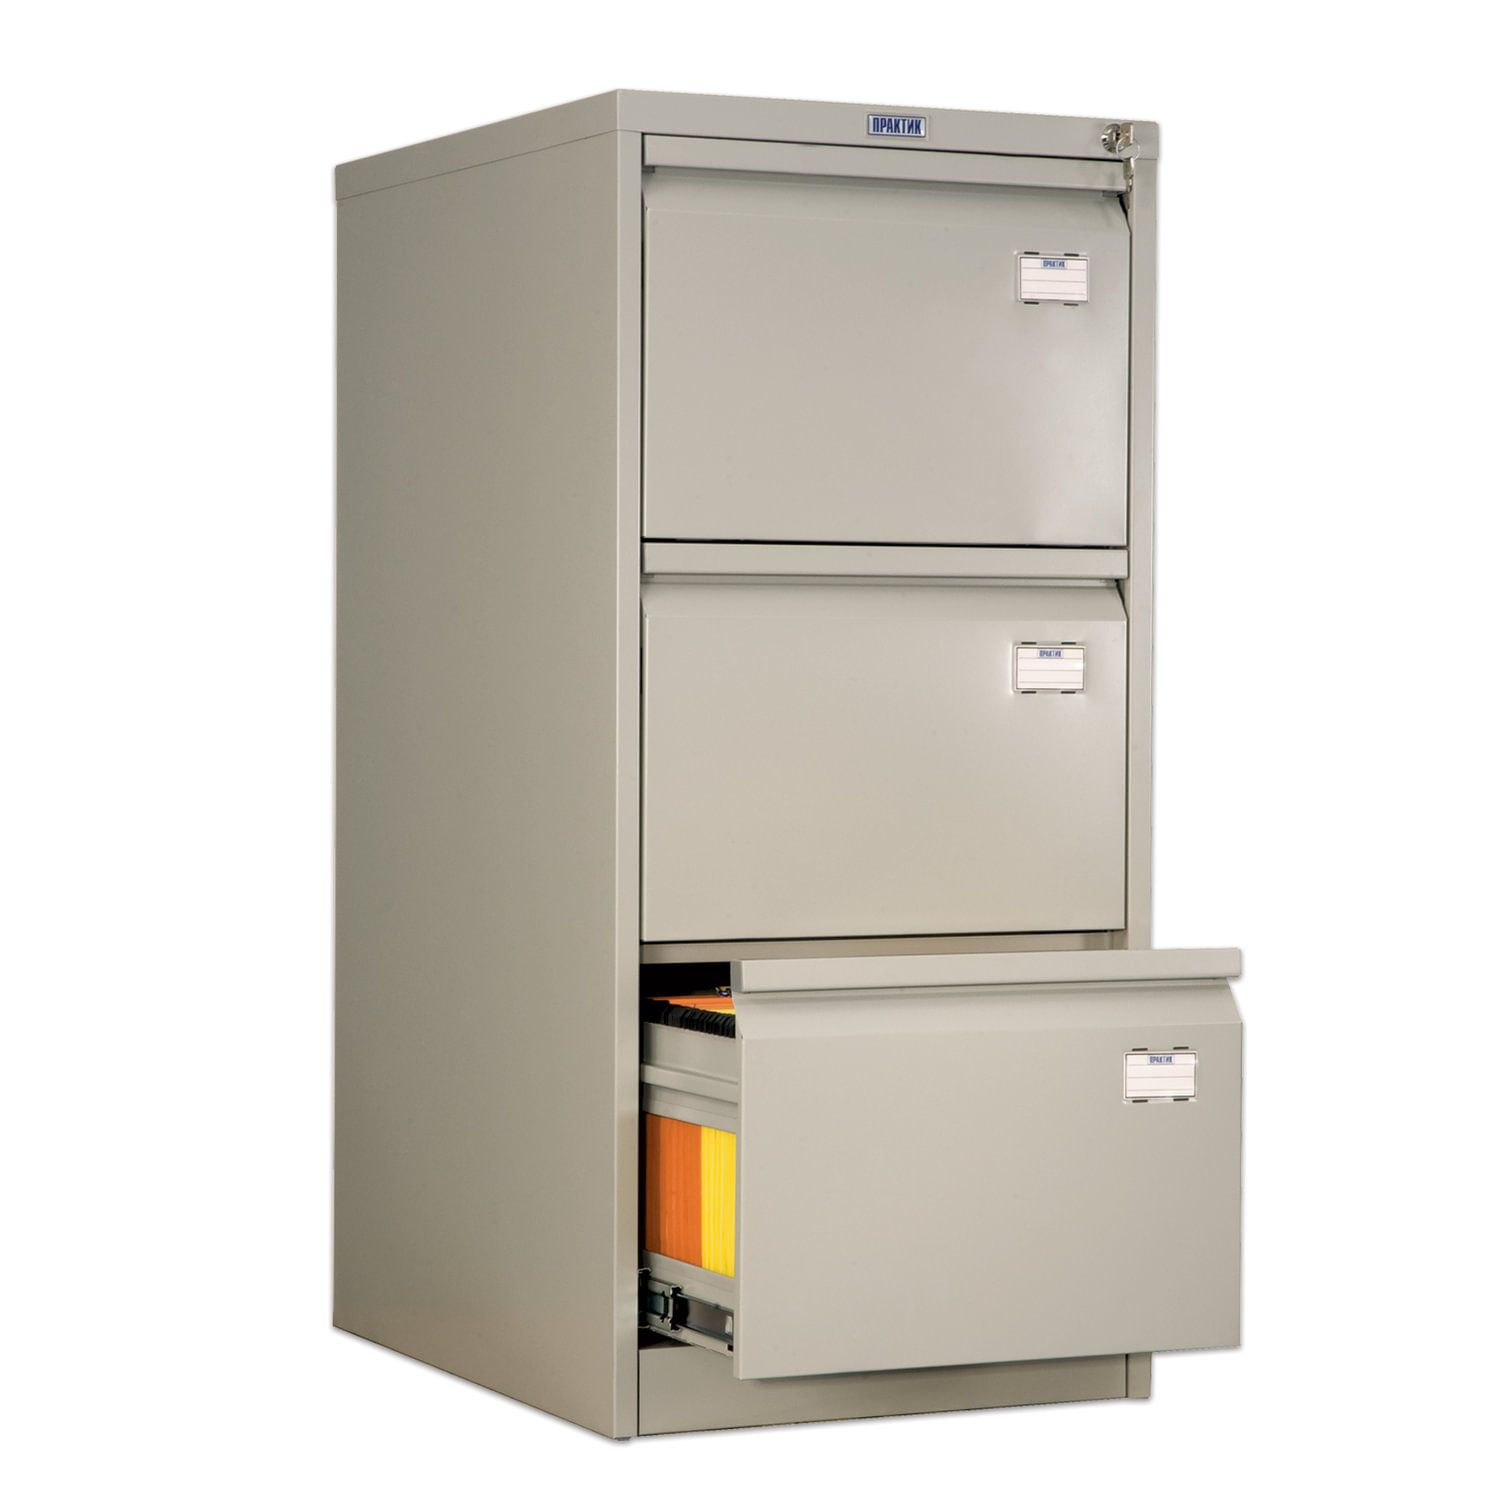 AFC-03 card cabinet, 1020 x467 x630 mm, 3 boxes, for 165 hanging folders, Foolscap or A4 folder format (FREE folders)